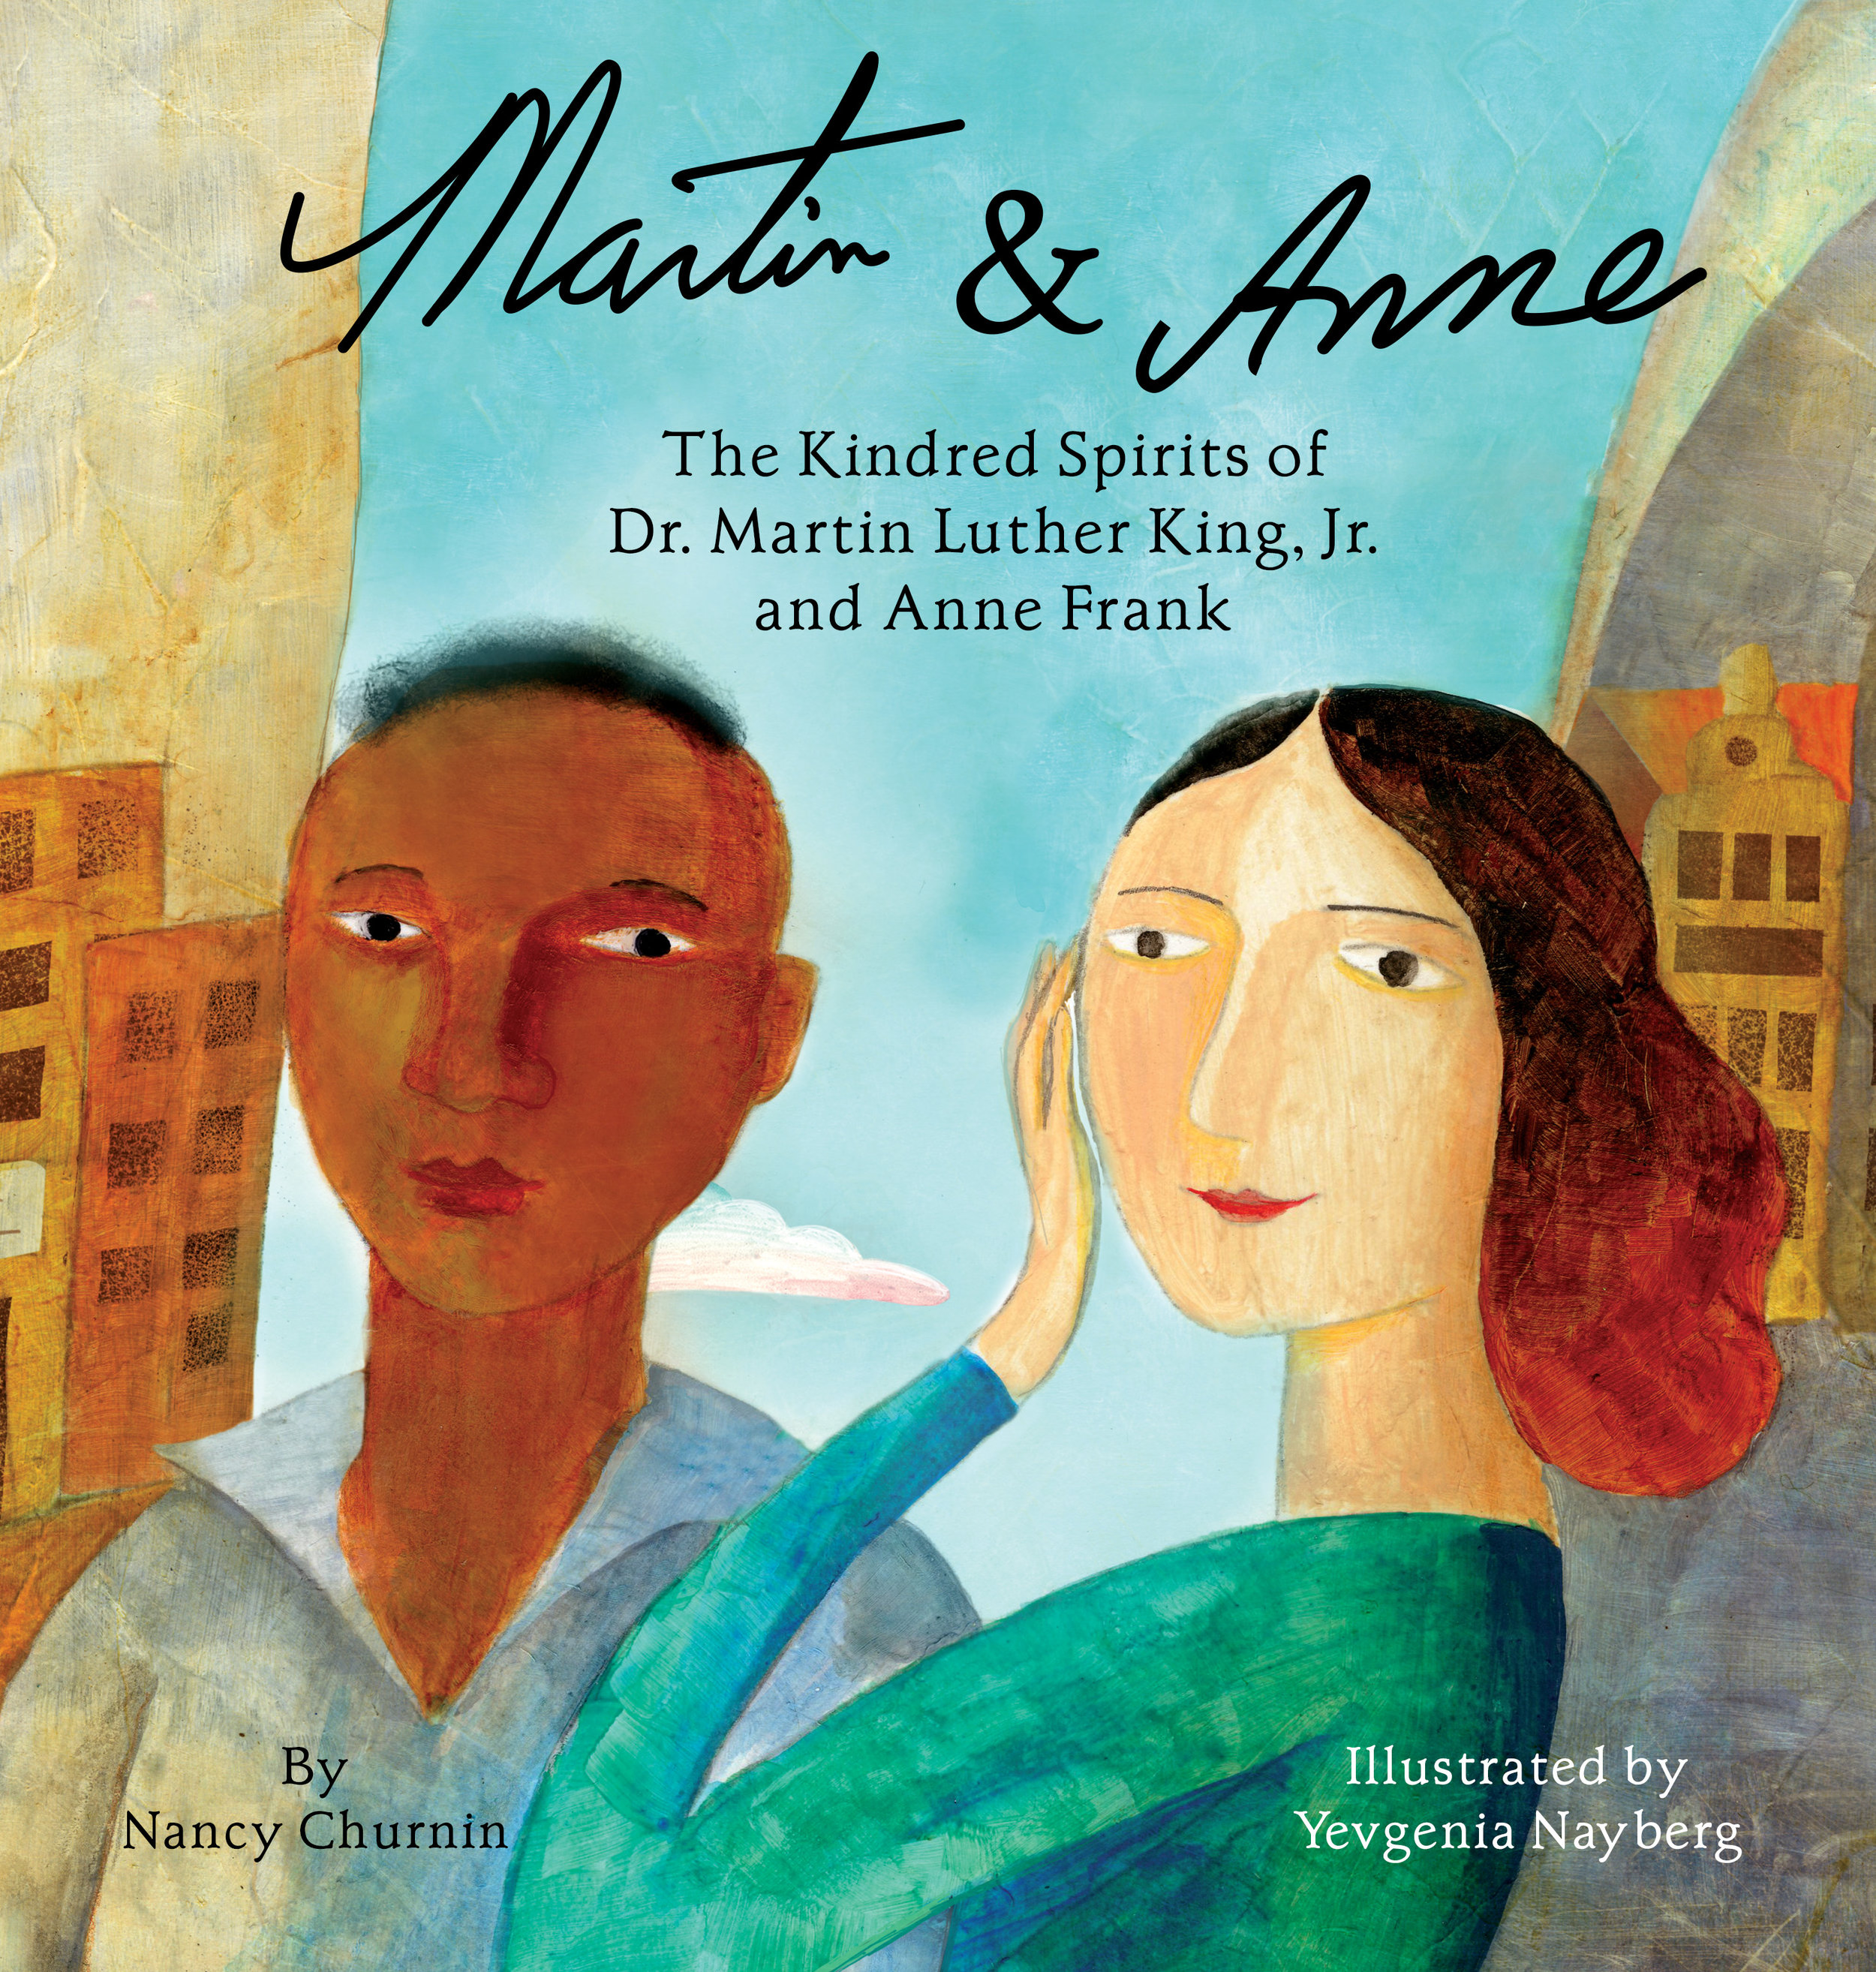 Cover of    Martin & Anne: The Kindred Spirits of Dr. Martin Luther King, Jr. and Anne Frank  ,  by  Nancy Churnin , illustration by Yevgenia Nayberg